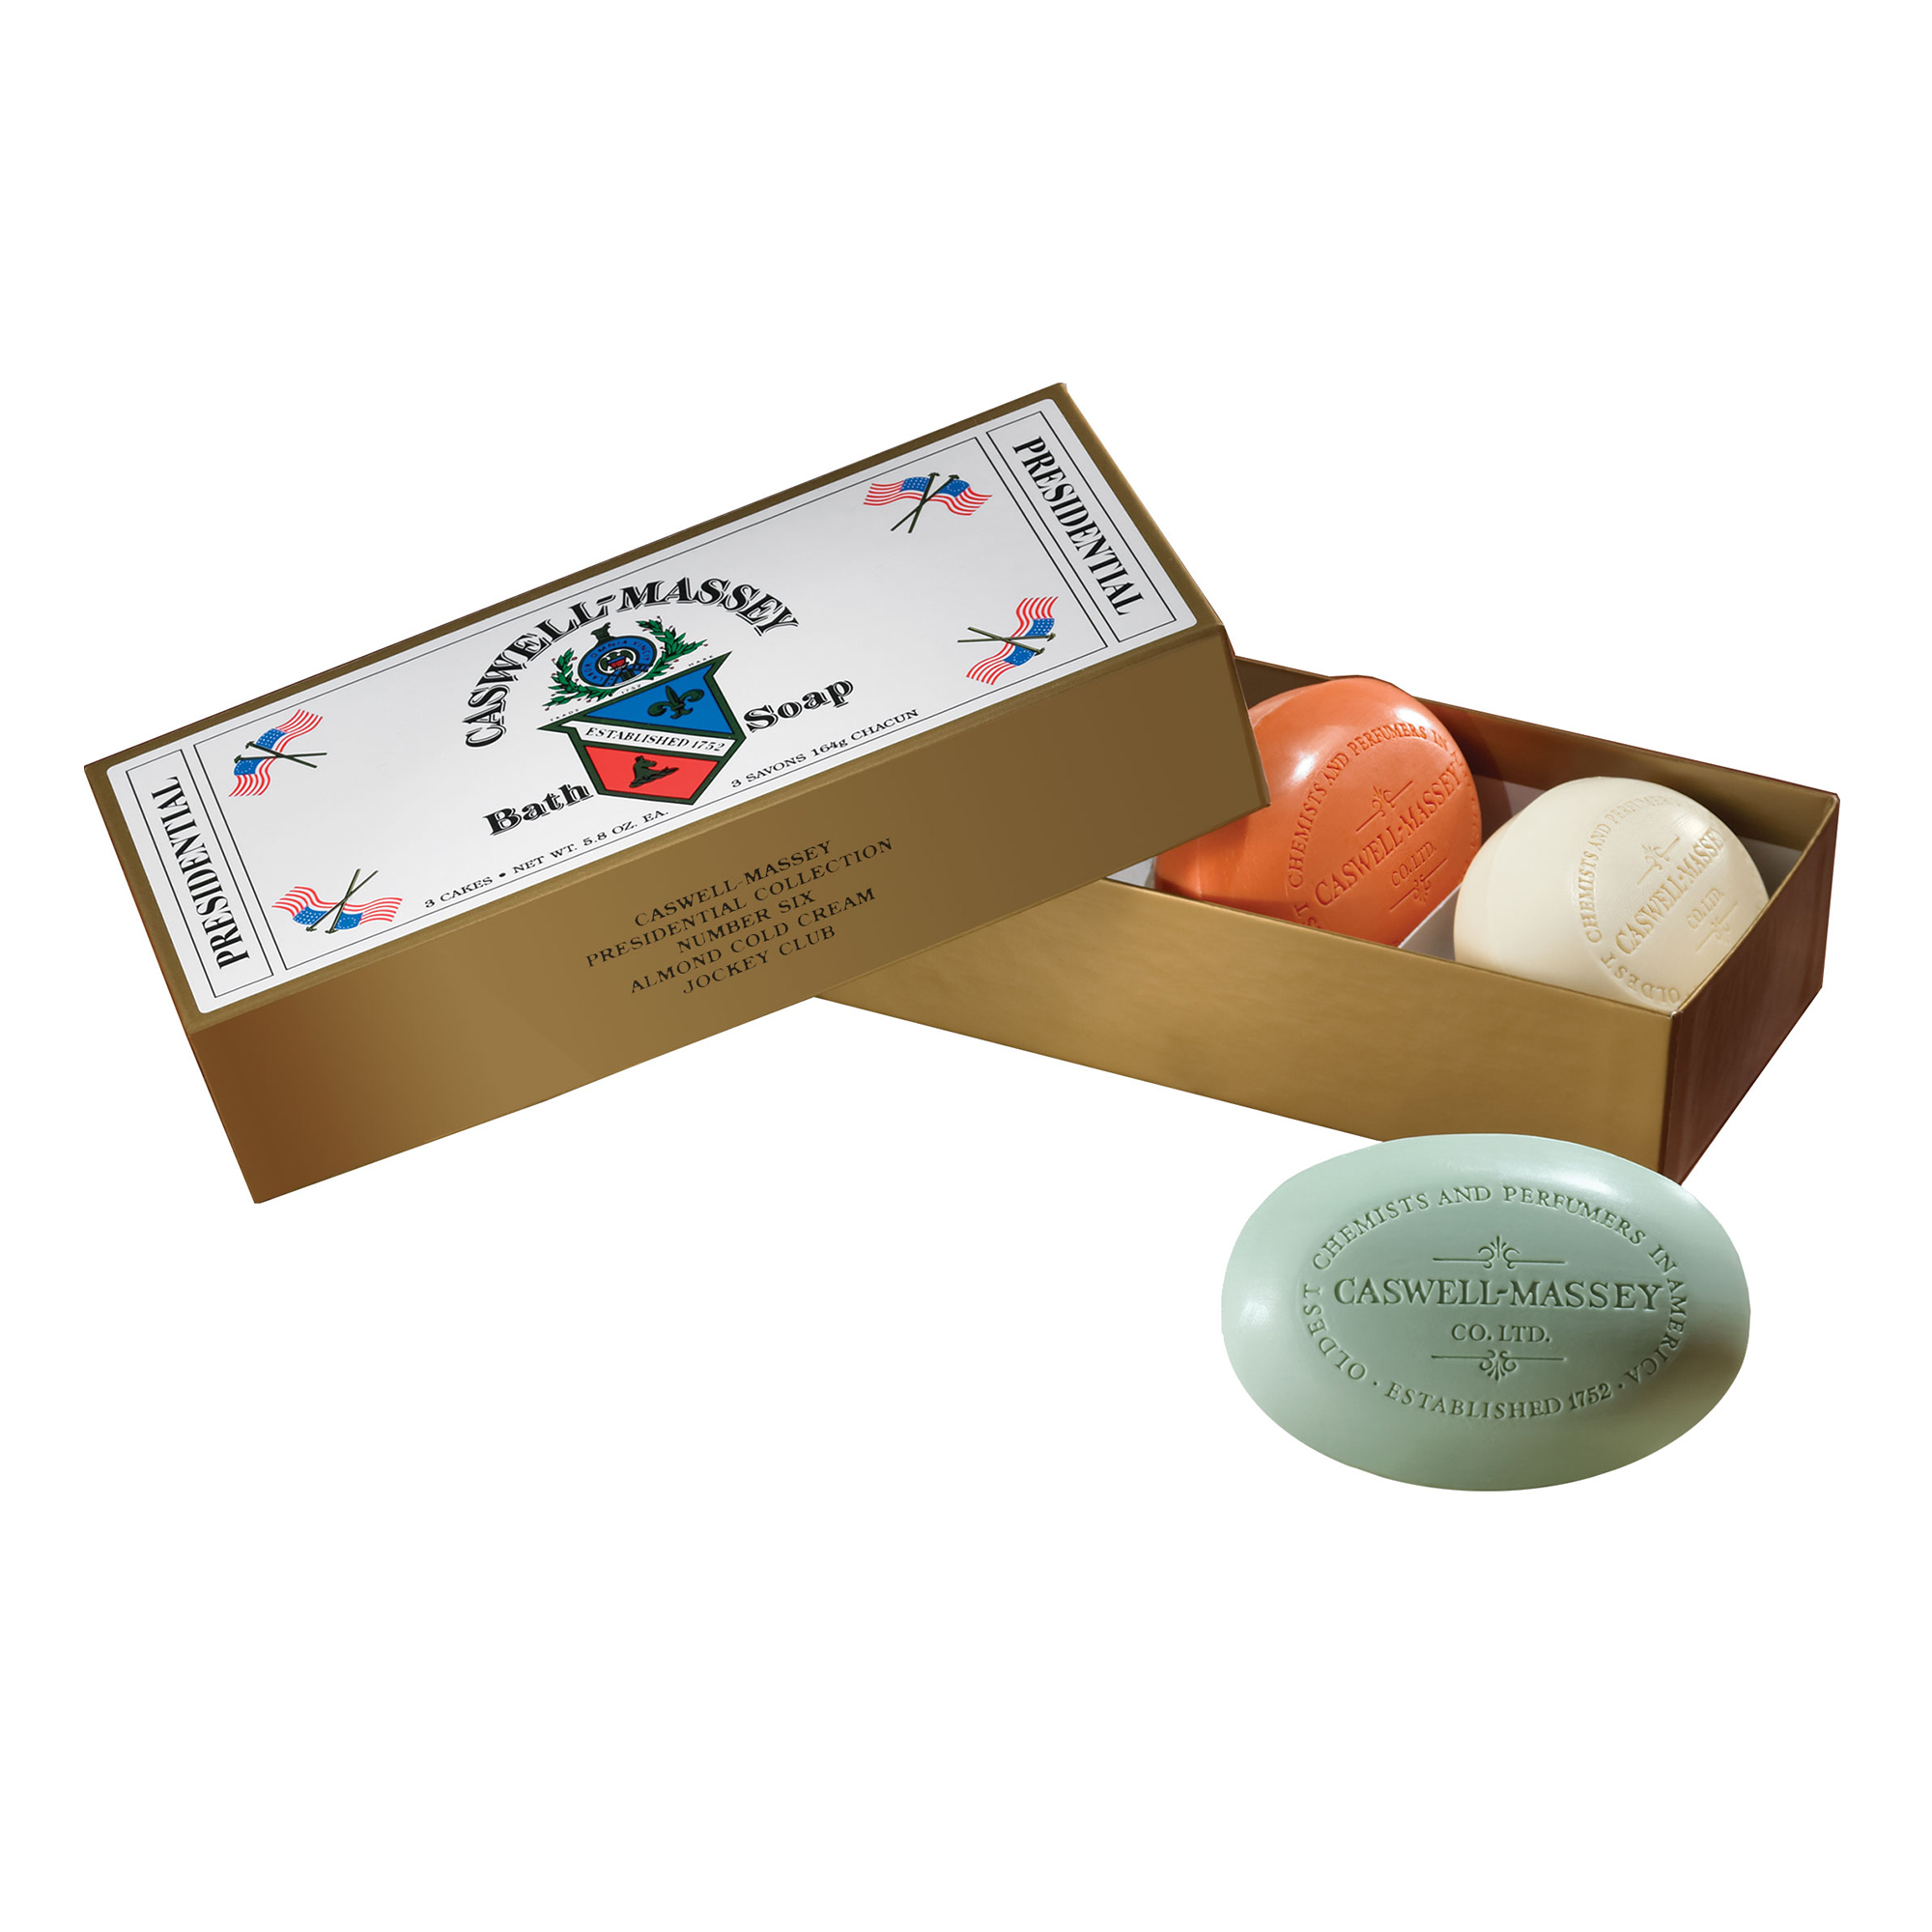 Presidental 3-Bar Soap Set